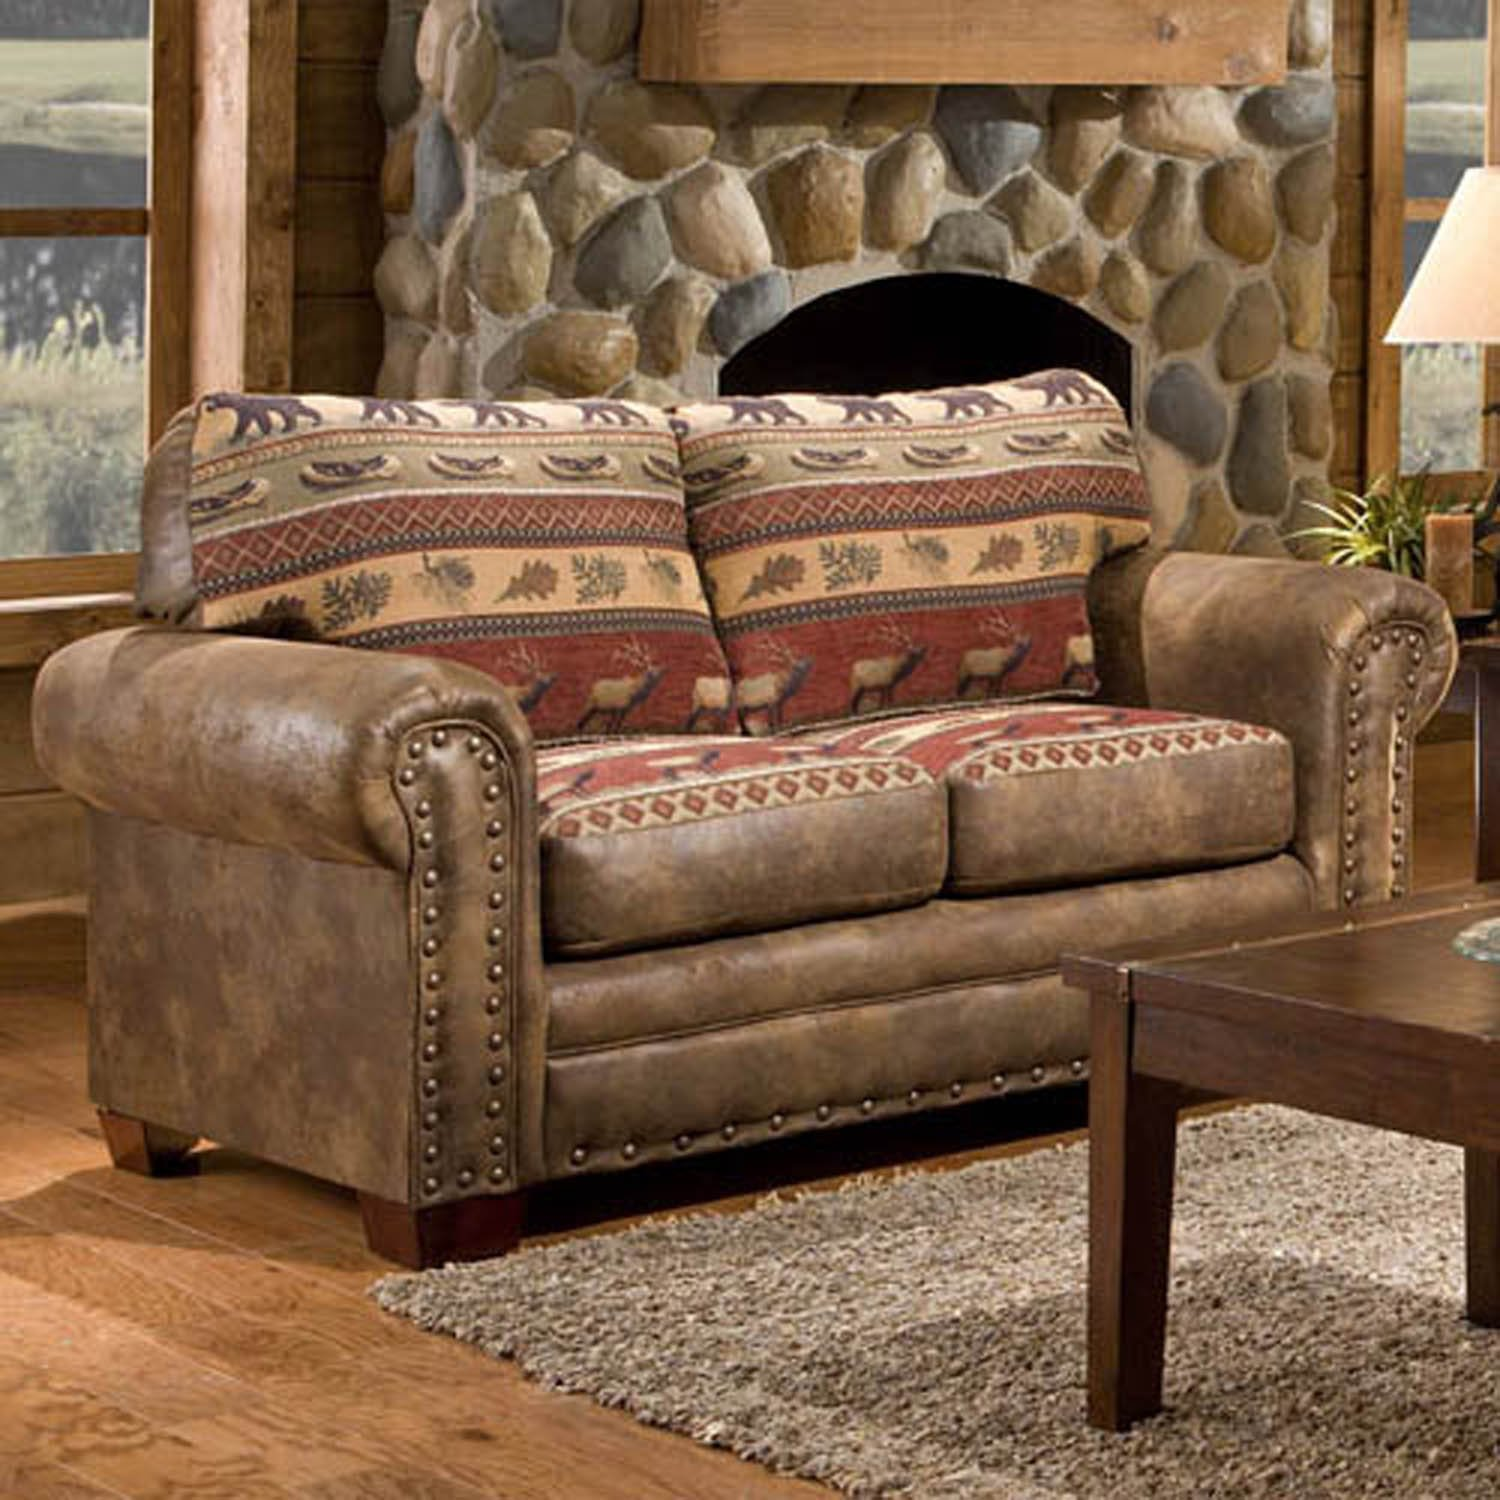 Amazon com  American Furniture Classics Sierra Lodge Love Seat Kitchen Dining